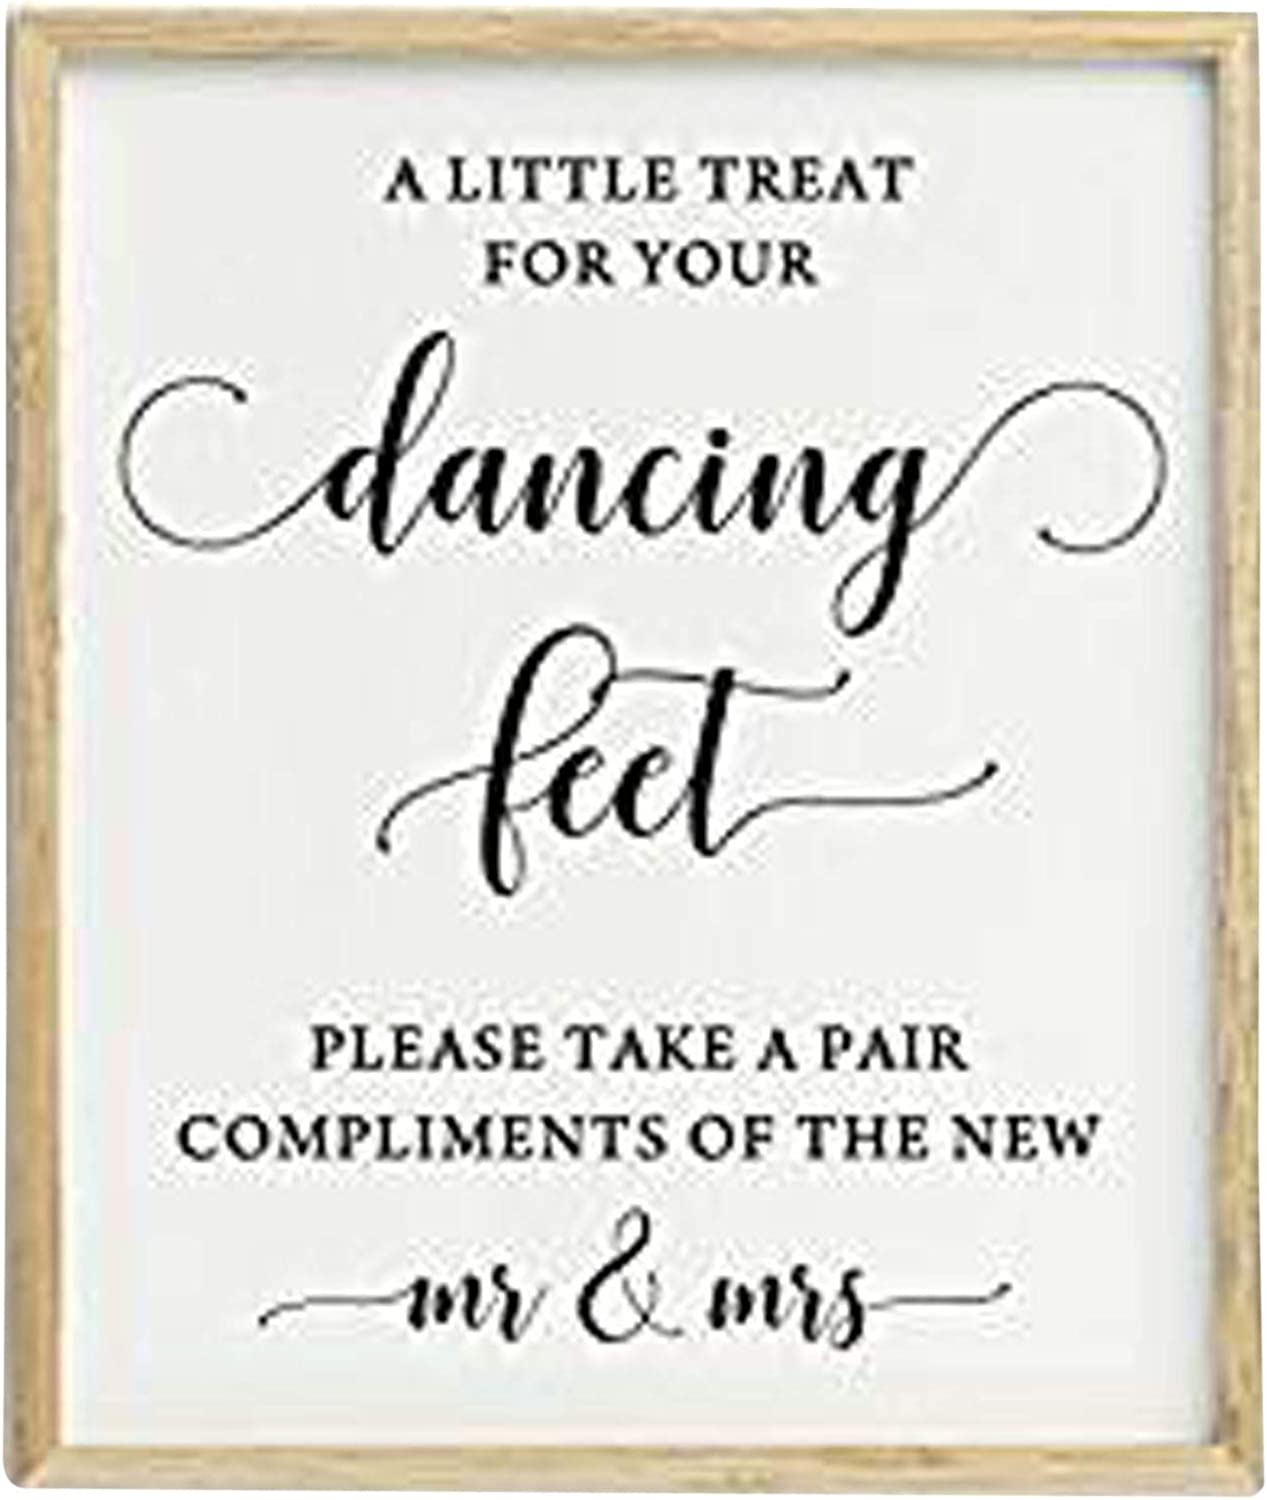 Floral A Little Treat For Your Dancing Feet Sign Printable Wedding Shoes Signage Instant Download 4x6 5x7 8x10 Signs Pdf Jpeg Home Living Wall Hangings Deshpandefoundationindia Org